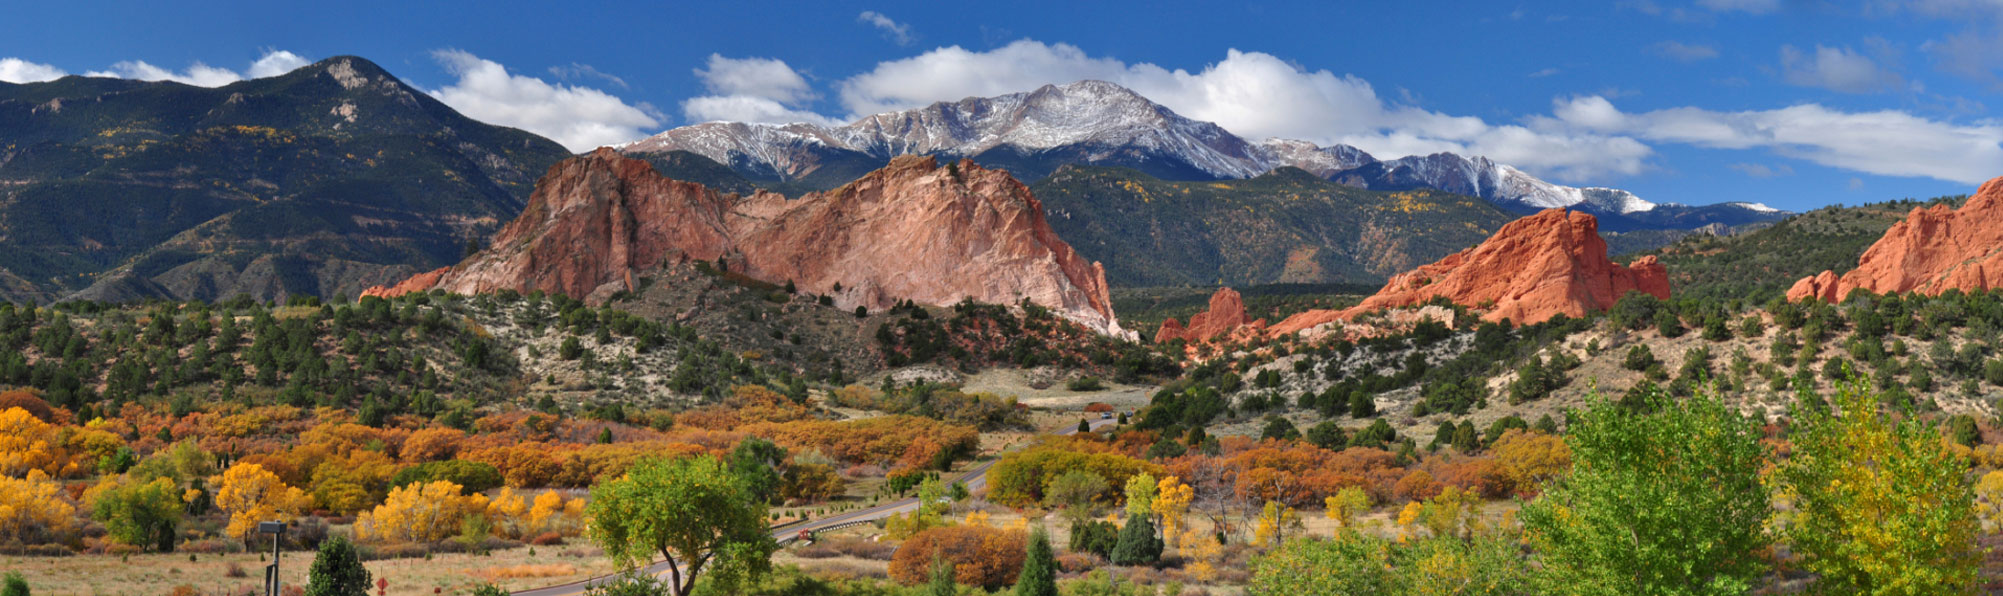 Colorado Springs Property Management Banner Image 1